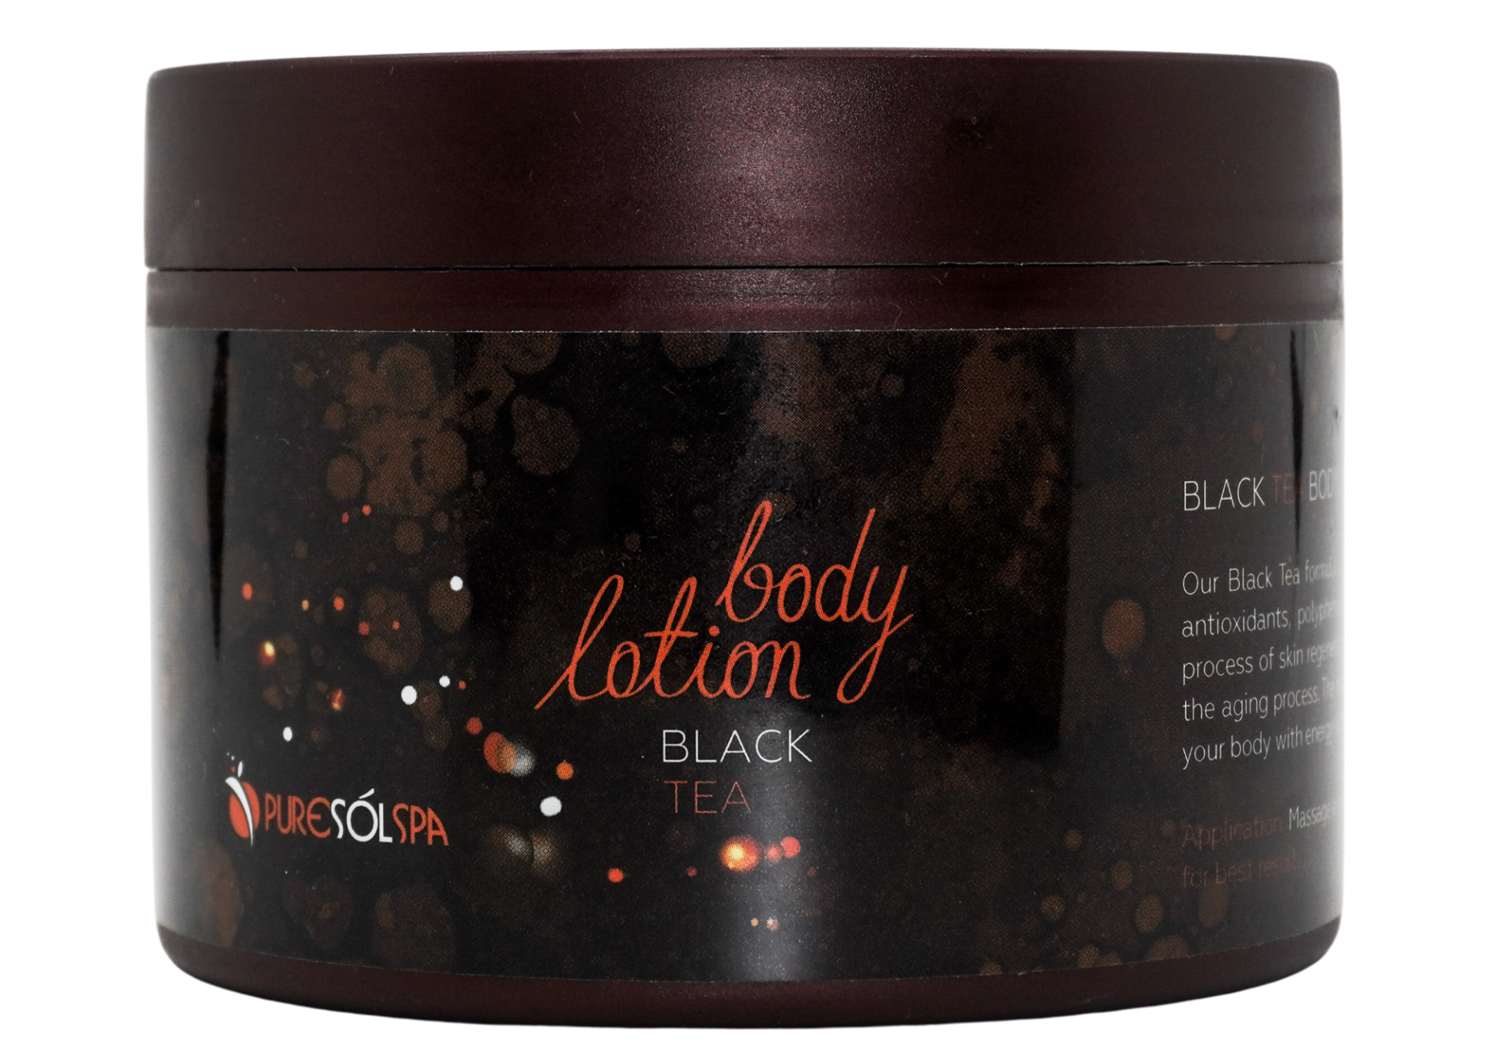 Black Tea Body Lotion